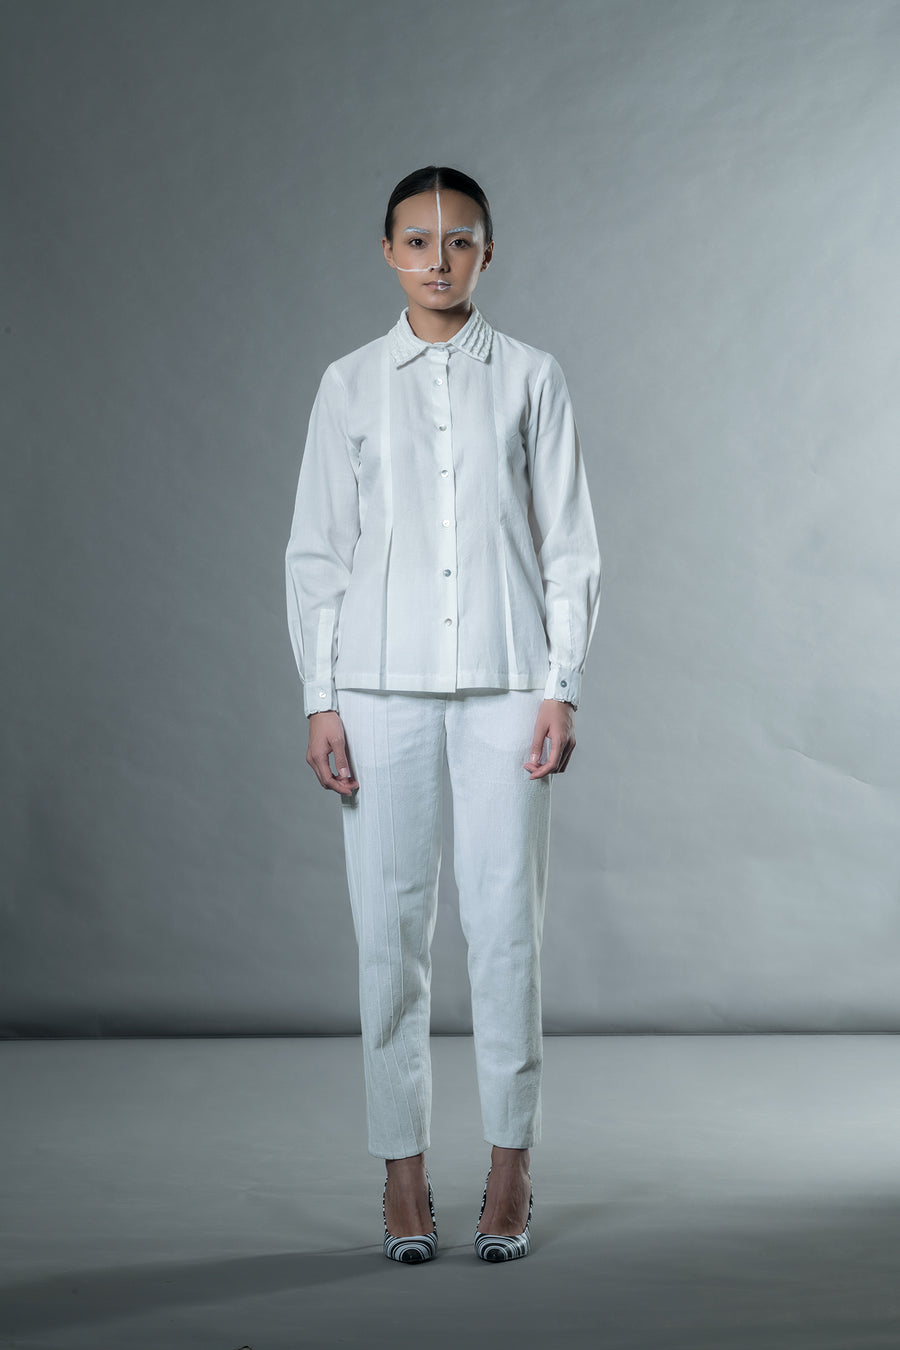 White pants with pintucks - Ethical made fashion - onlyethikal